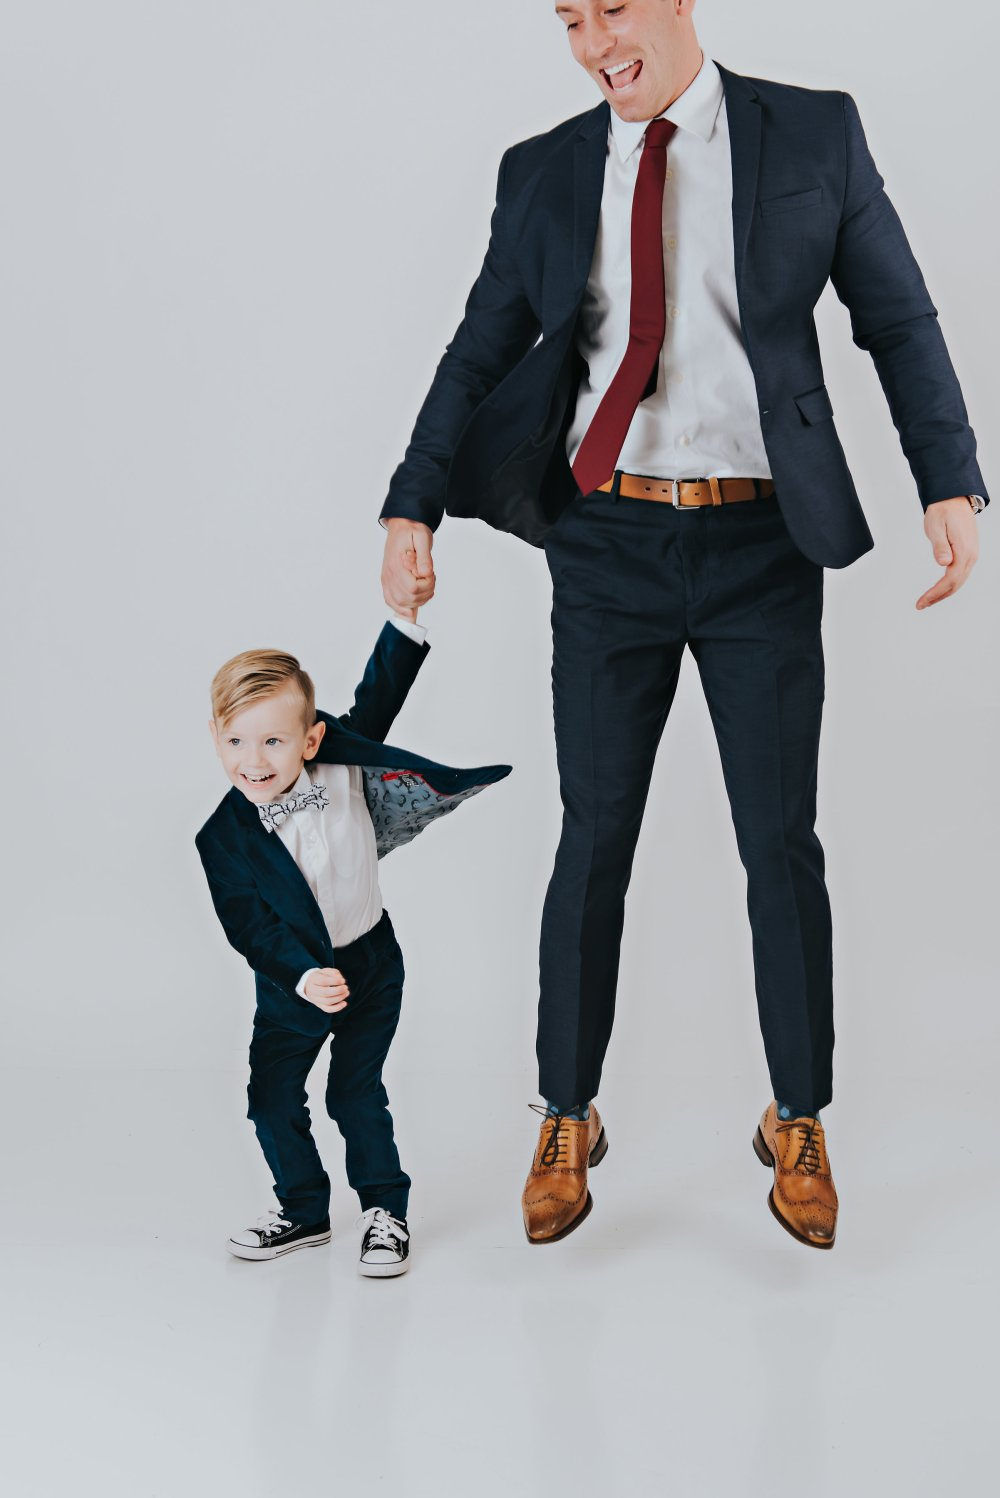 This photo is SO fun! Truly captures the energy these two put off! Both looking dapper in their suits! Perfect outfits for weddings, parties or any special occasion! #likefatherlikeson #sharpeddressedmen #boysfashion #mensfashion #familyphotos #candidphoto